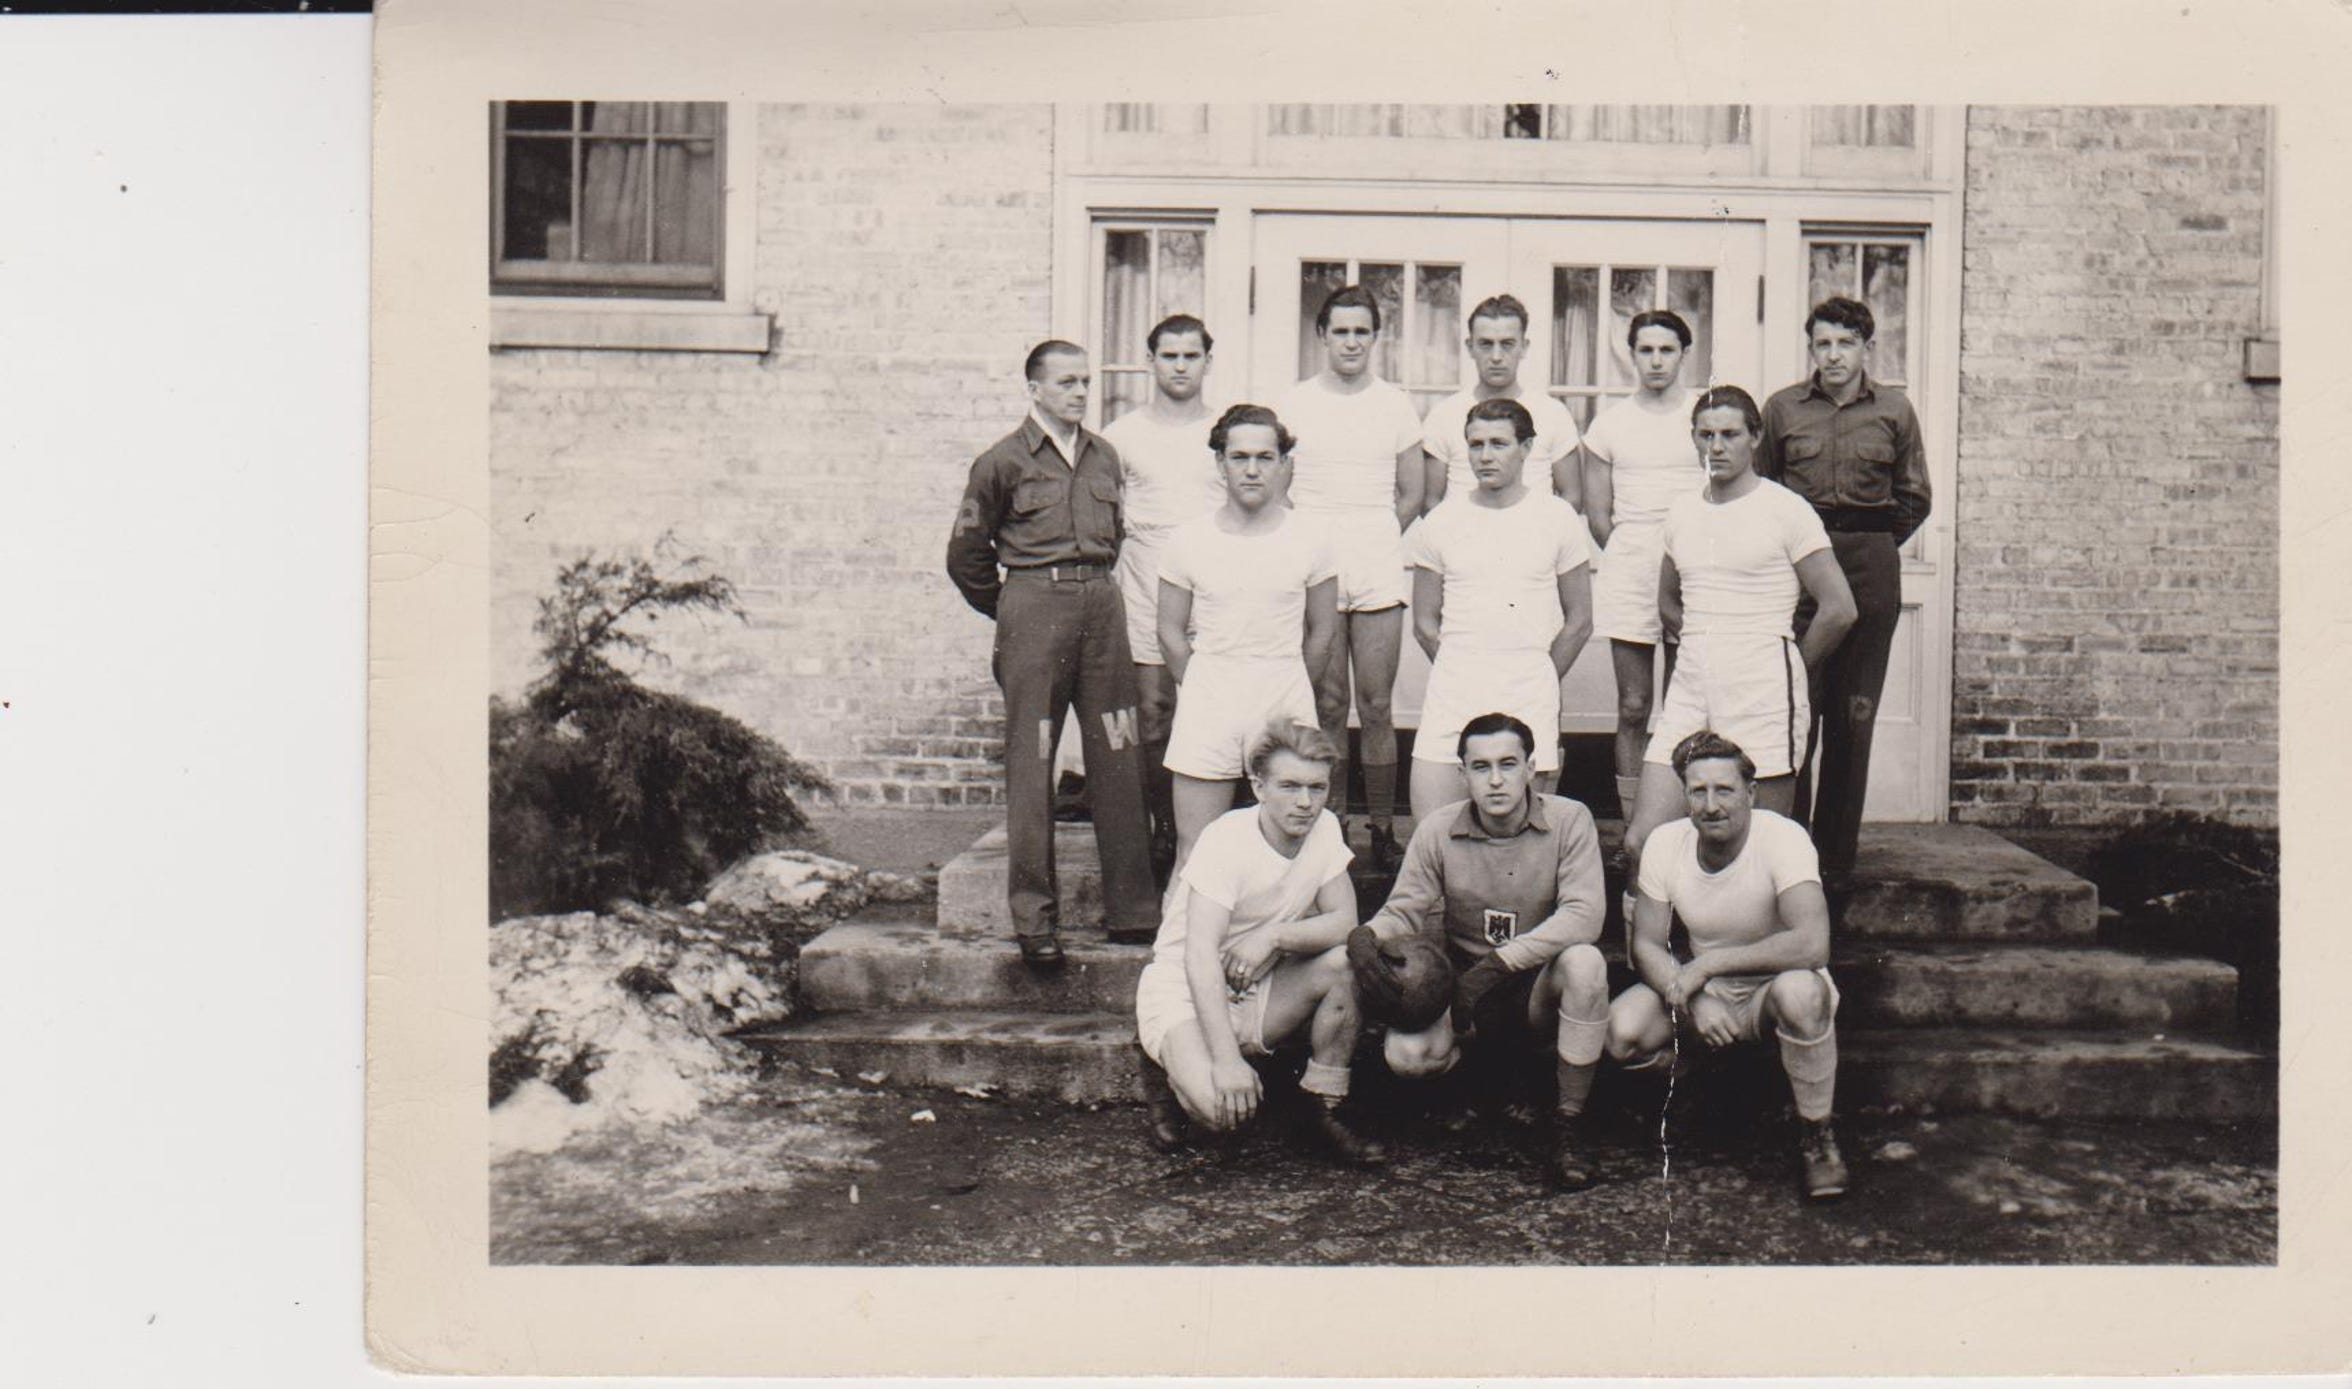 During his time at Camp Hartford, Kurt Pechmann was part of a soccer team. In this photo from January 1945, the soccer team is pictured, with Pechmann seen on the left side of the middle row.